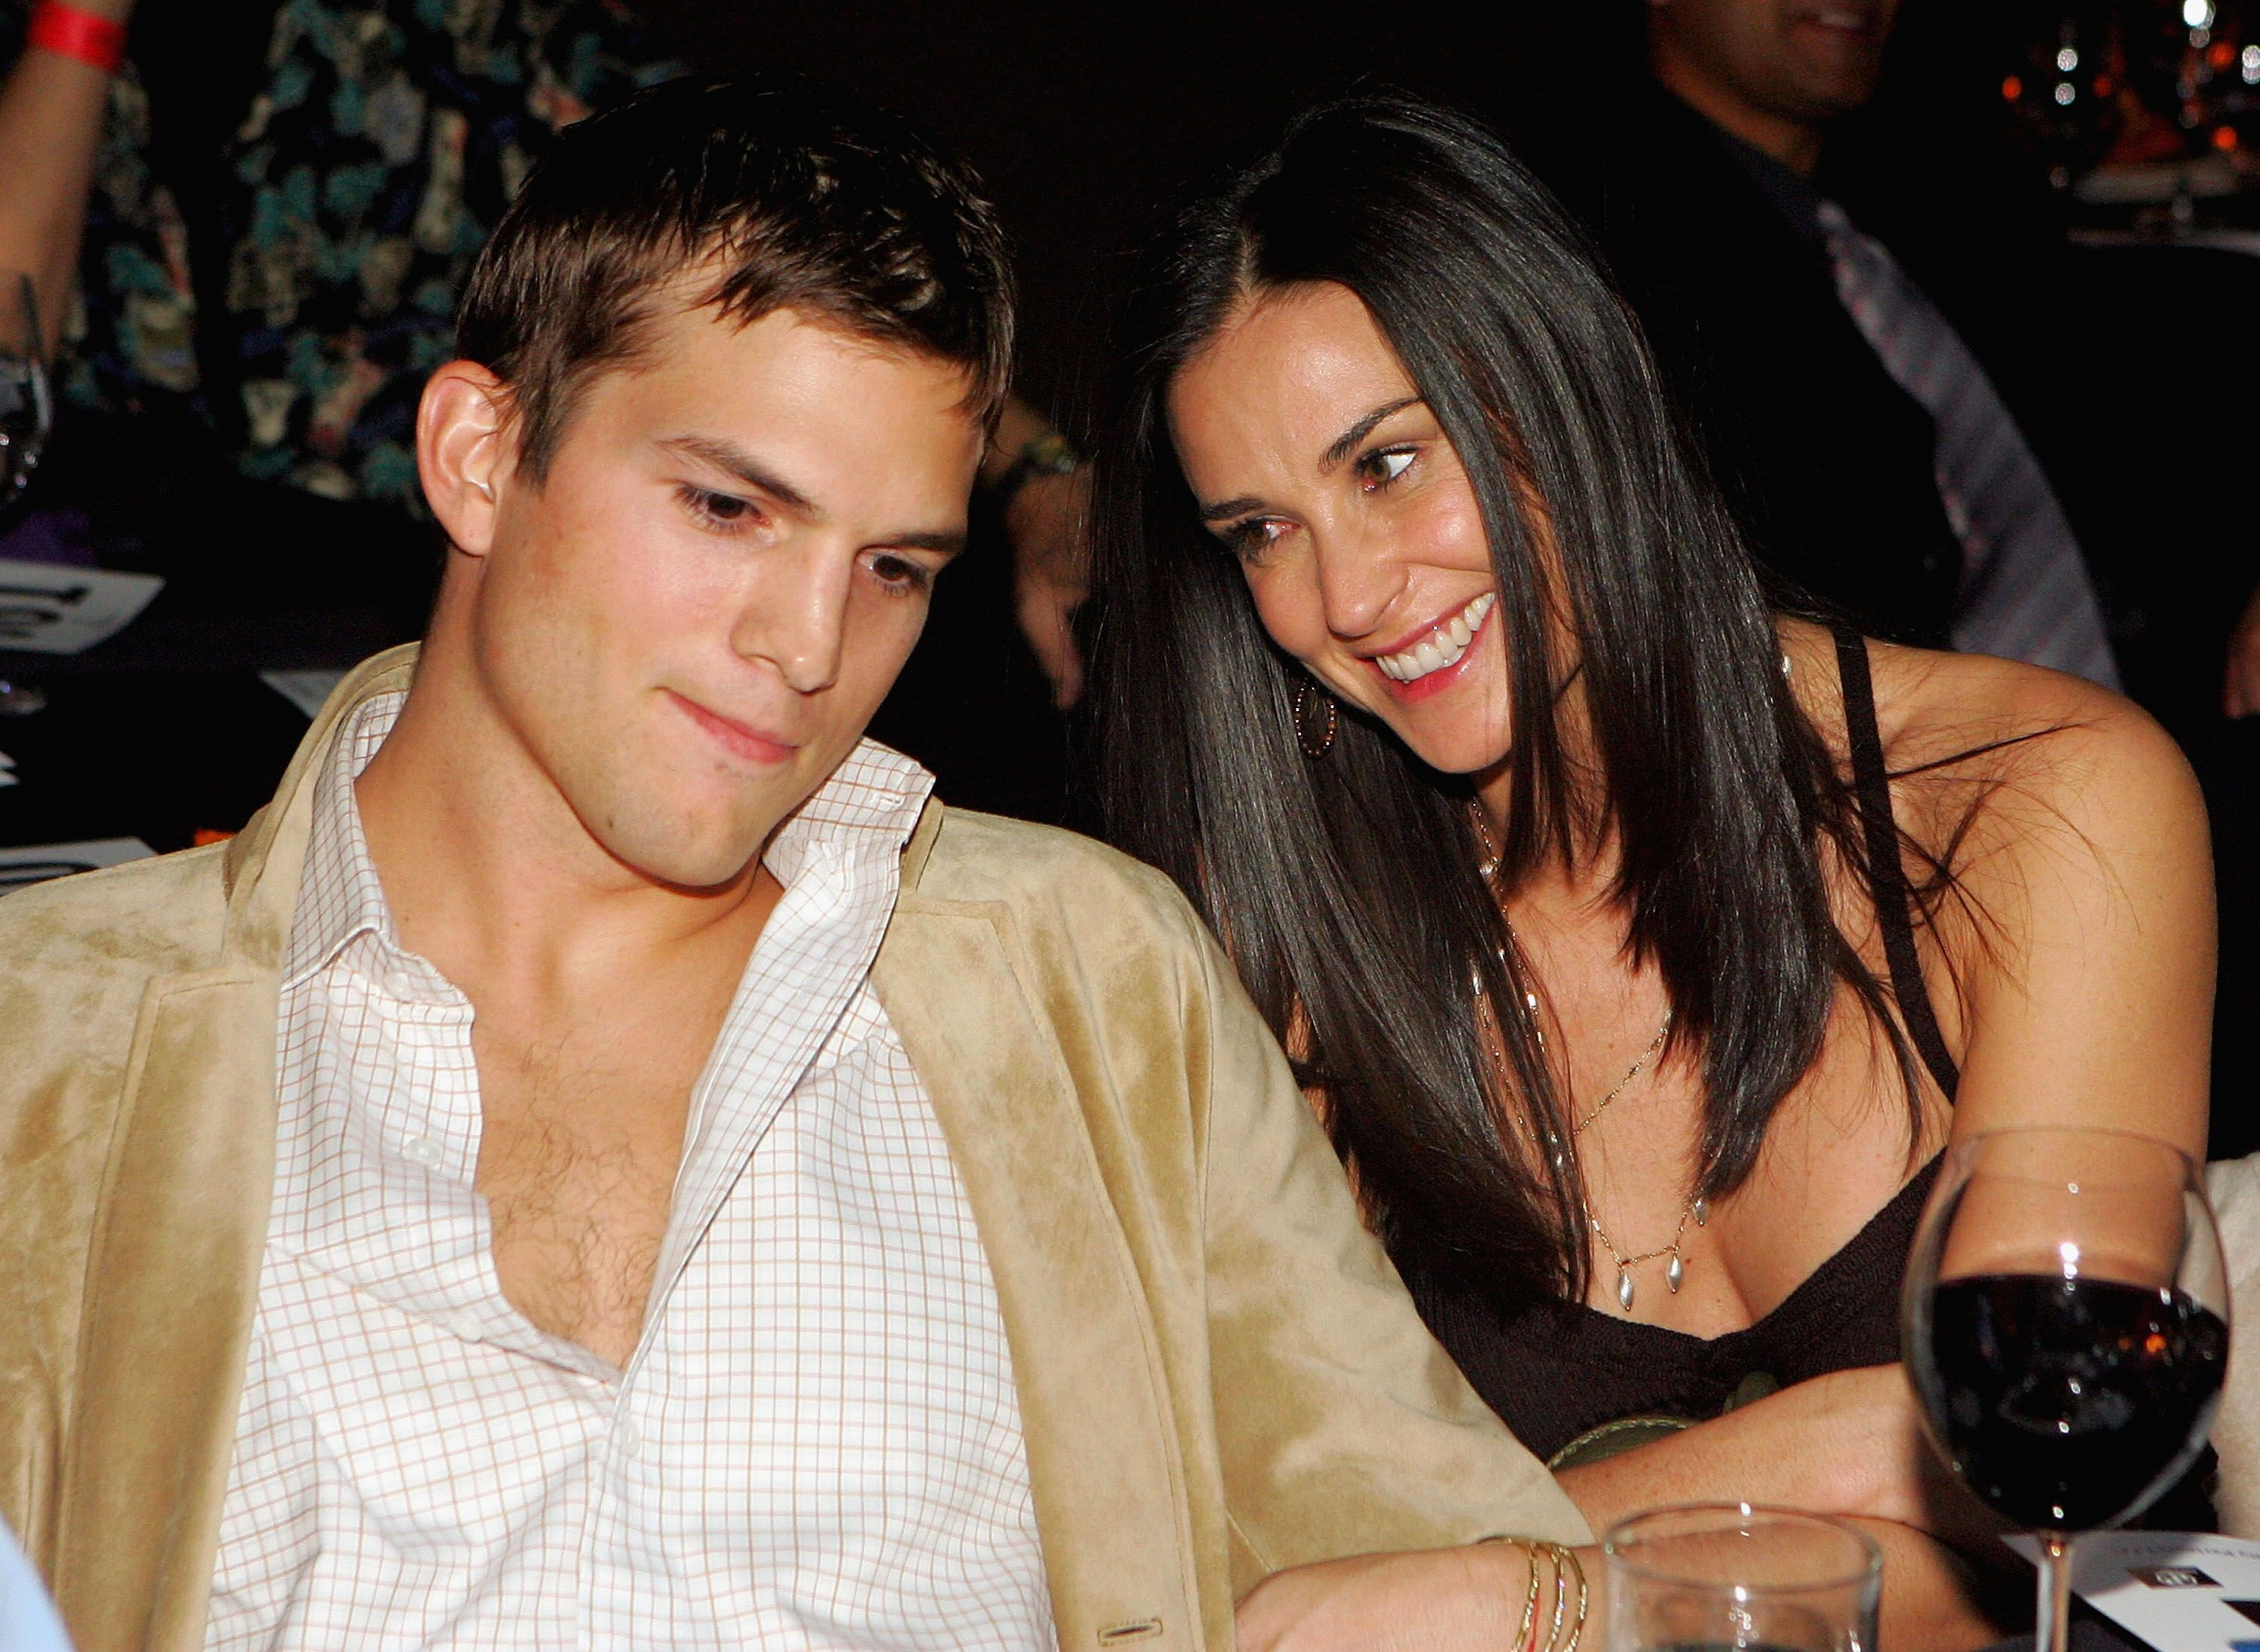 Ashton Kutcher and Demi Moore during Ubid.com Joins Forces with Hollywood Stars to Launch Celebrity Auction to Benefit Hurricane Victims. | Source: Getty Images